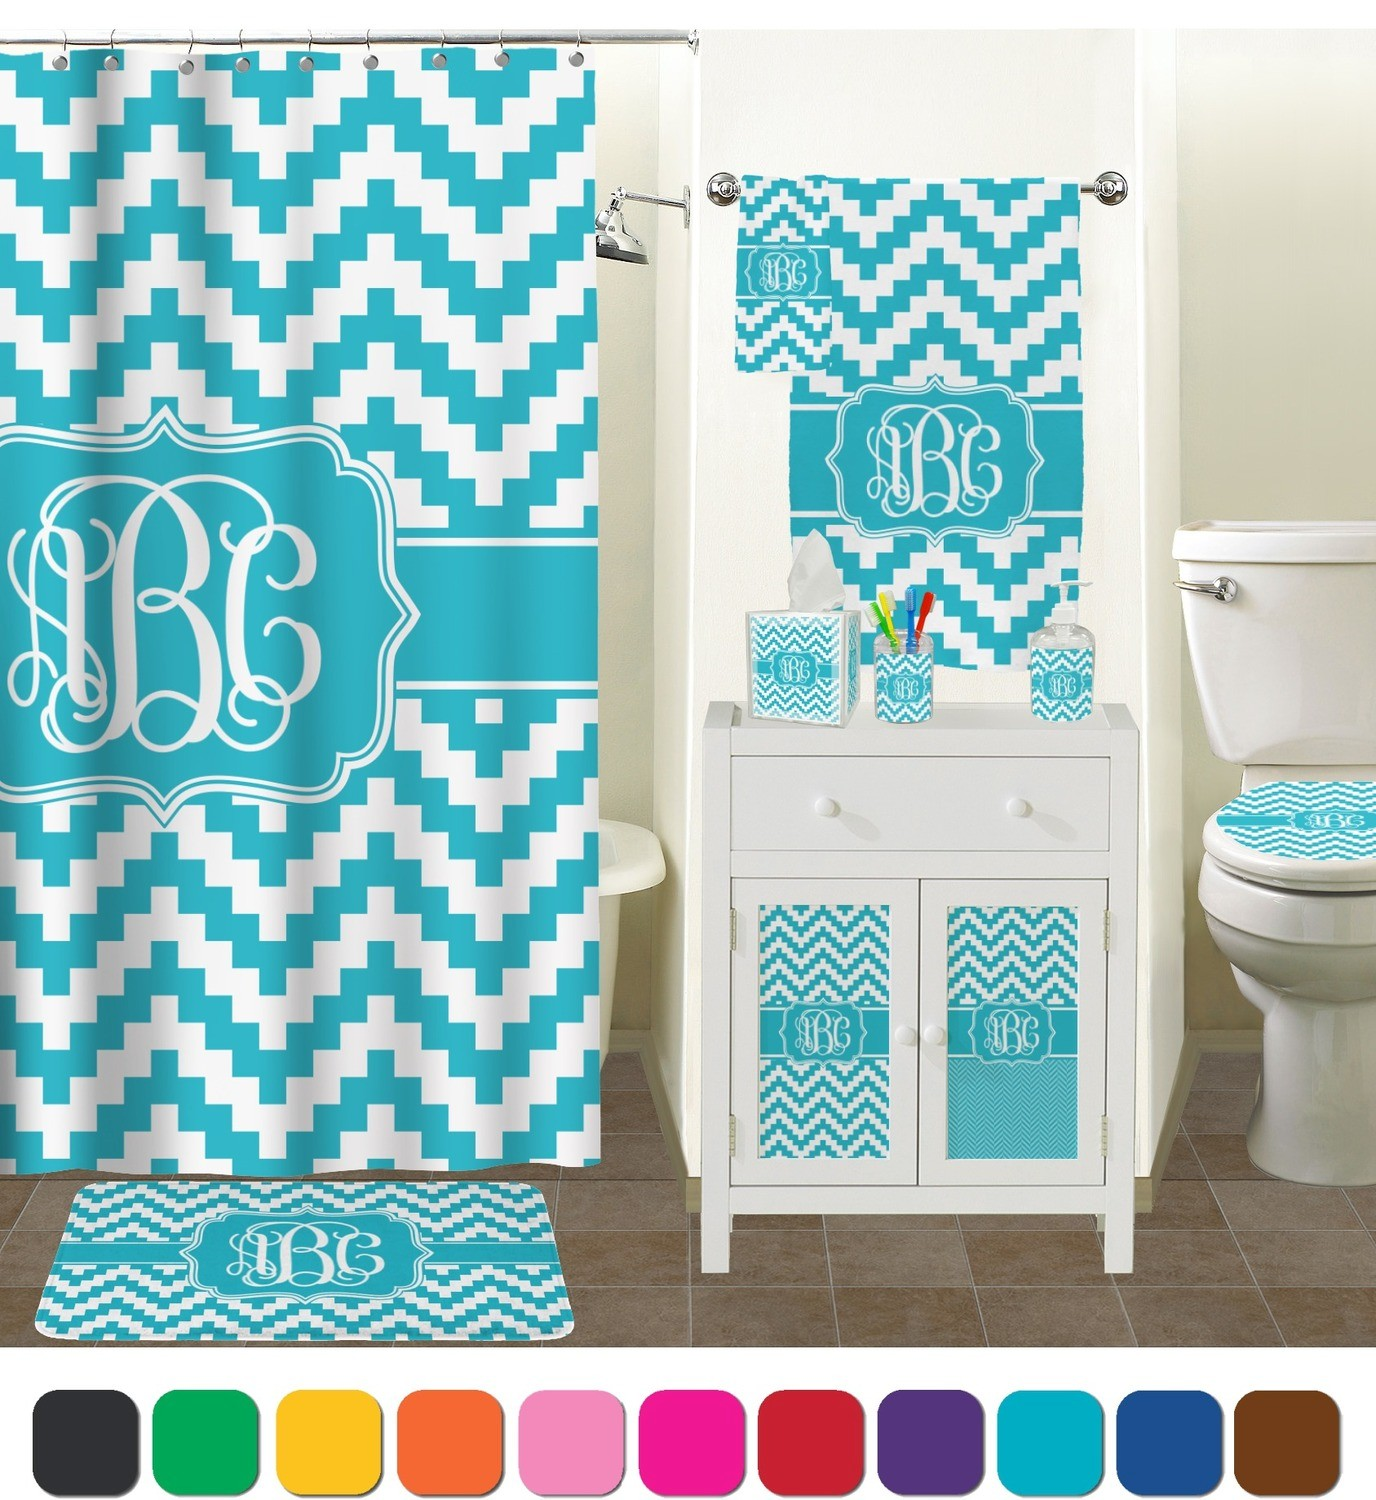 Shower Curtain And Rugs Chevron Bathroom Set Lovely Pixelated Accessories Personalized Online